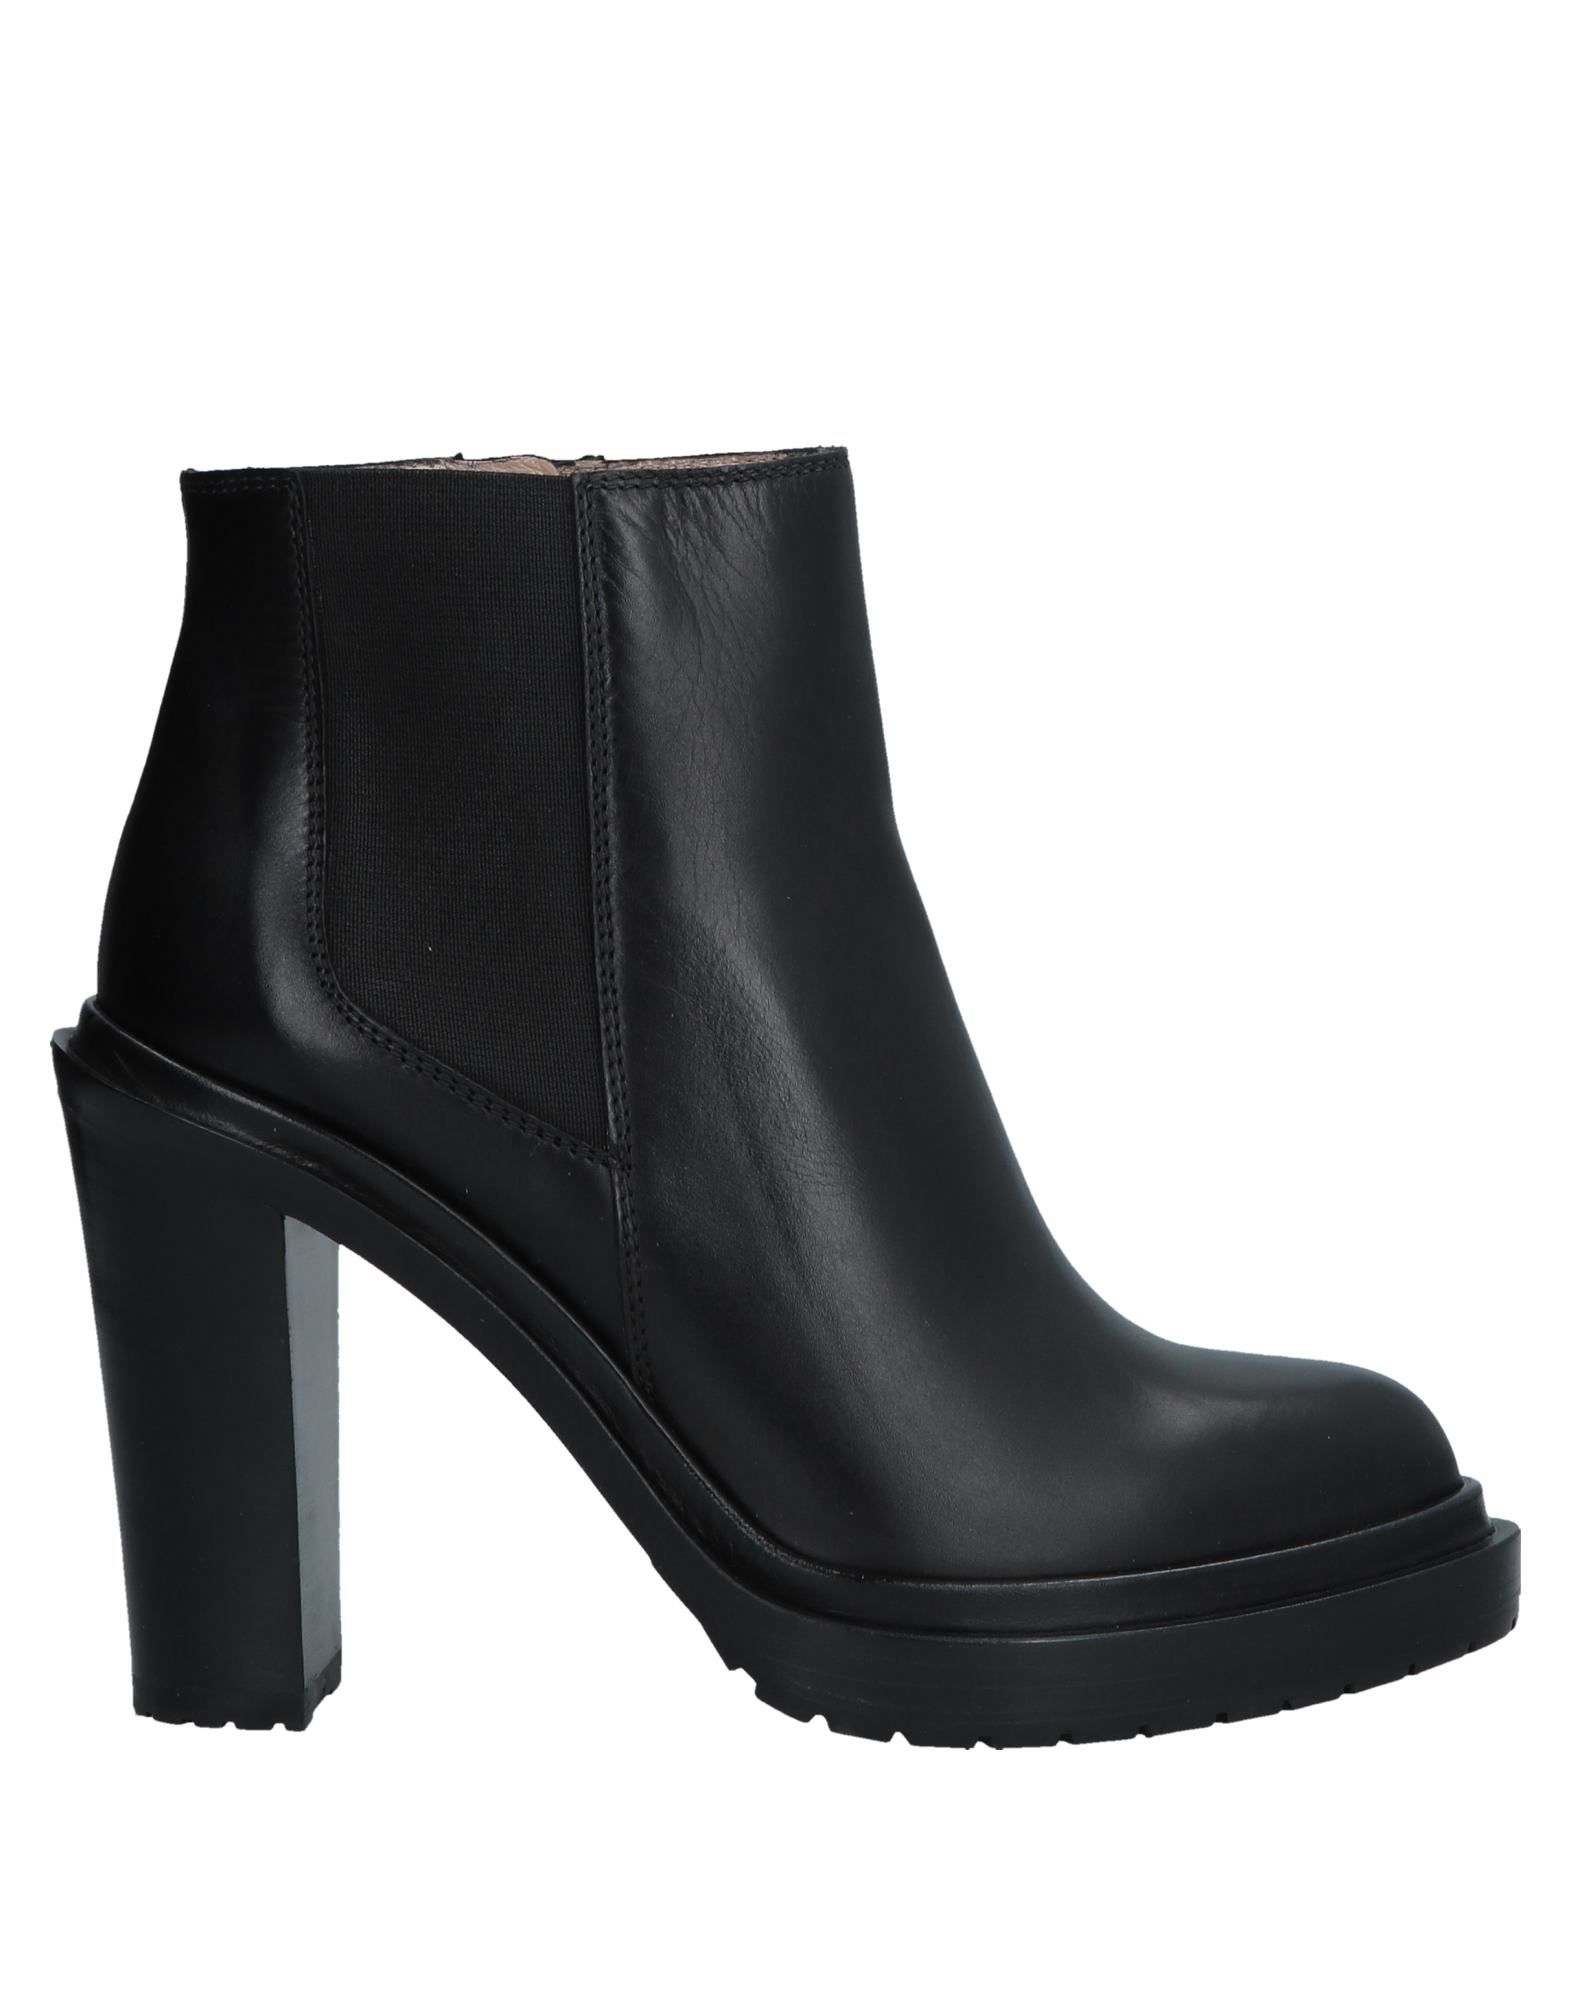 Sergio Rossi Ankle Boot - Women Sergio Rossi Rossi Sergio Ankle Boots online on  United Kingdom - 11563971AP 29095b